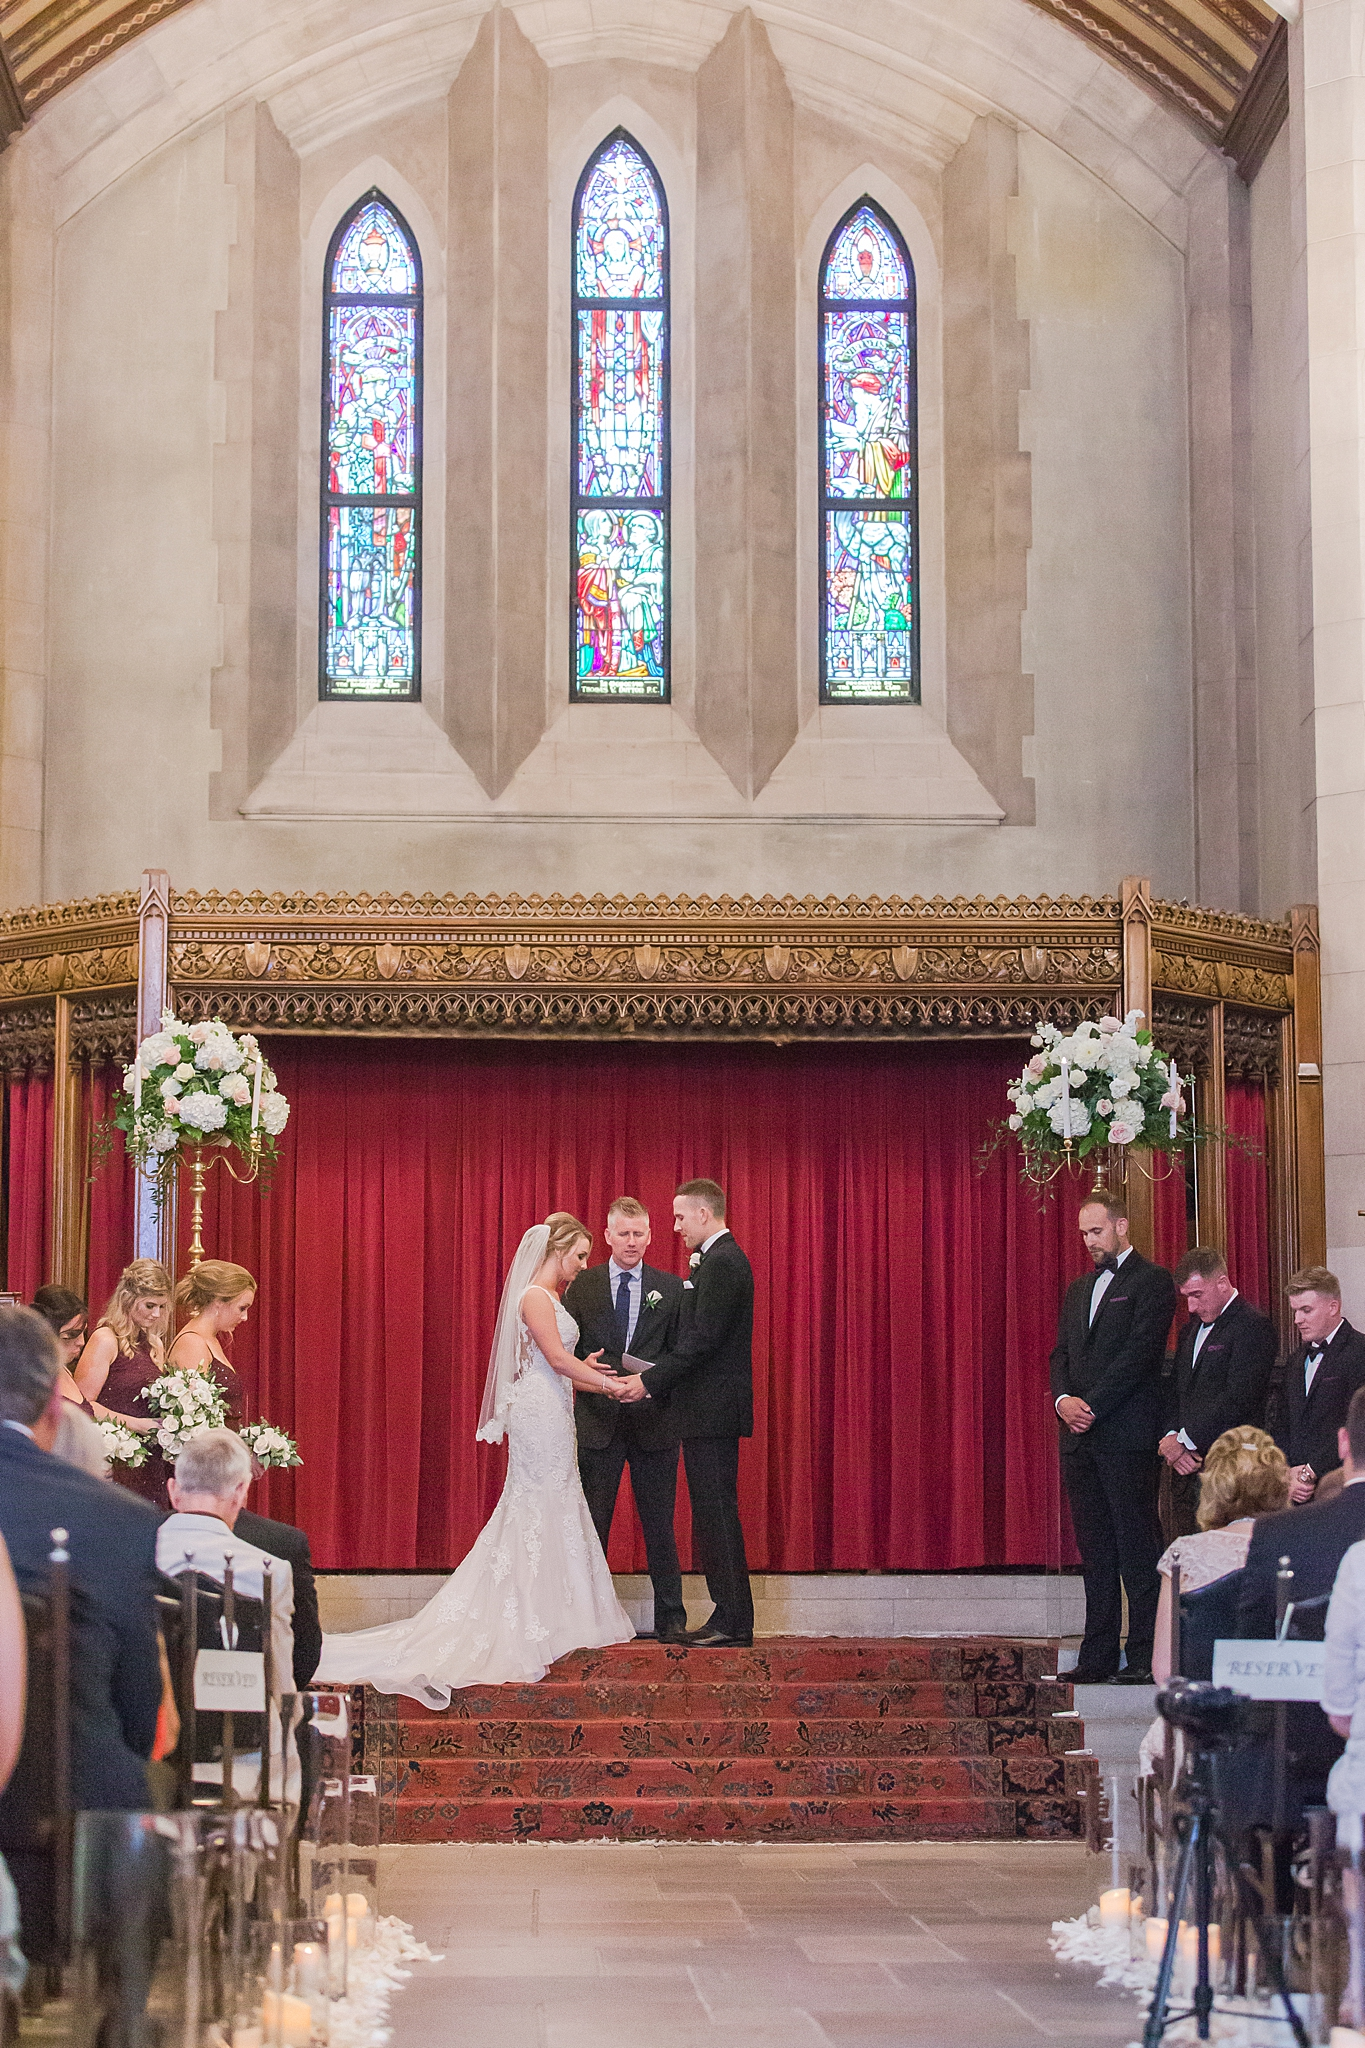 masonic-temple-iconic-wedding-photography-in-detroit-michigan-by-courtney-carolyn-photography_0046.jpg